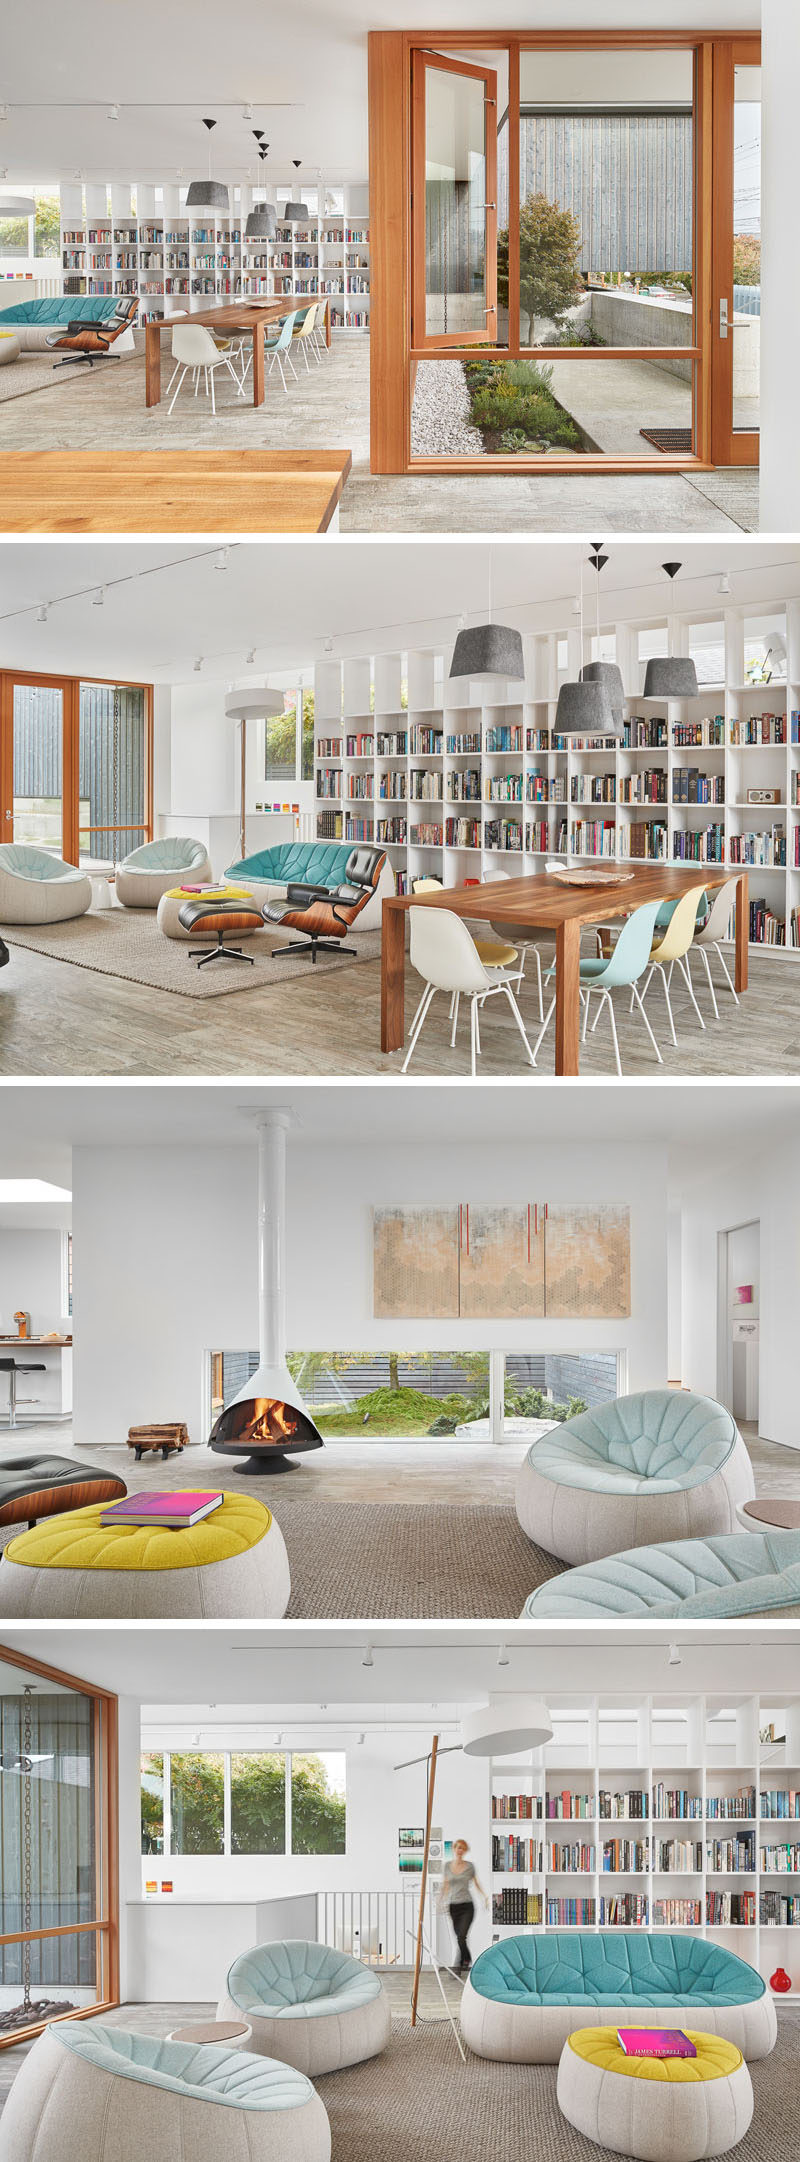 Inside this modern home, the living room has a wall of custom bookshelves, comfortable sofas and a wooden dining table surrounded by colored chairs.